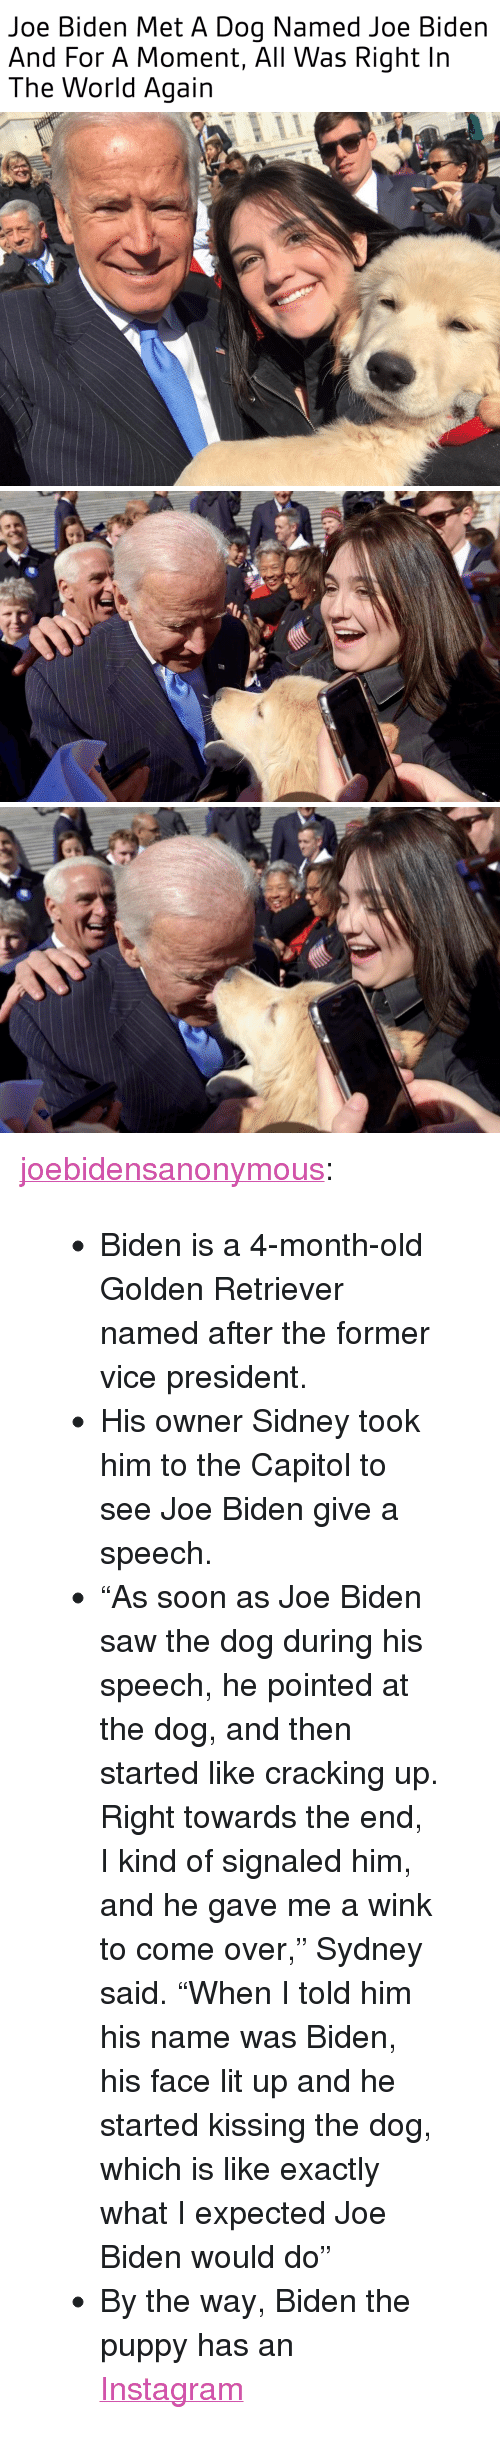 """Cracking Up: Joe Biden Met A Dog Named Joe Biden  And For A Moment, All Was Right In  The World Again <p><a href=""""https://joebidensanonymous.tumblr.com/post/159546520759/biden-is-a-4-month-old-golden-retriever-named"""" class=""""tumblr_blog"""">joebidensanonymous</a>:</p>  <blockquote><ul><li>Biden is a 4-month-old Golden Retriever named after the former vice president.</li><li>His owner Sidney took him to the Capitol to see Joe Biden give a speech.</li><li>""""As soon as Joe Biden saw the dog during his speech, he pointed at the dog, and then started like cracking up. Right towards the end, I kind of signaled him, and he gave me a wink to come over,"""" Sydney said. """"When I told him his name was Biden, his face lit up and he started kissing the dog, which is like exactly what I expected Joe Biden would do""""</li><li>By the way, Biden the puppy has an <a href=""""https://www.instagram.com/p/BQ5qnB5AmrW/?taken-by=bidenthegolden"""">Instagram</a></li></ul></blockquote>"""